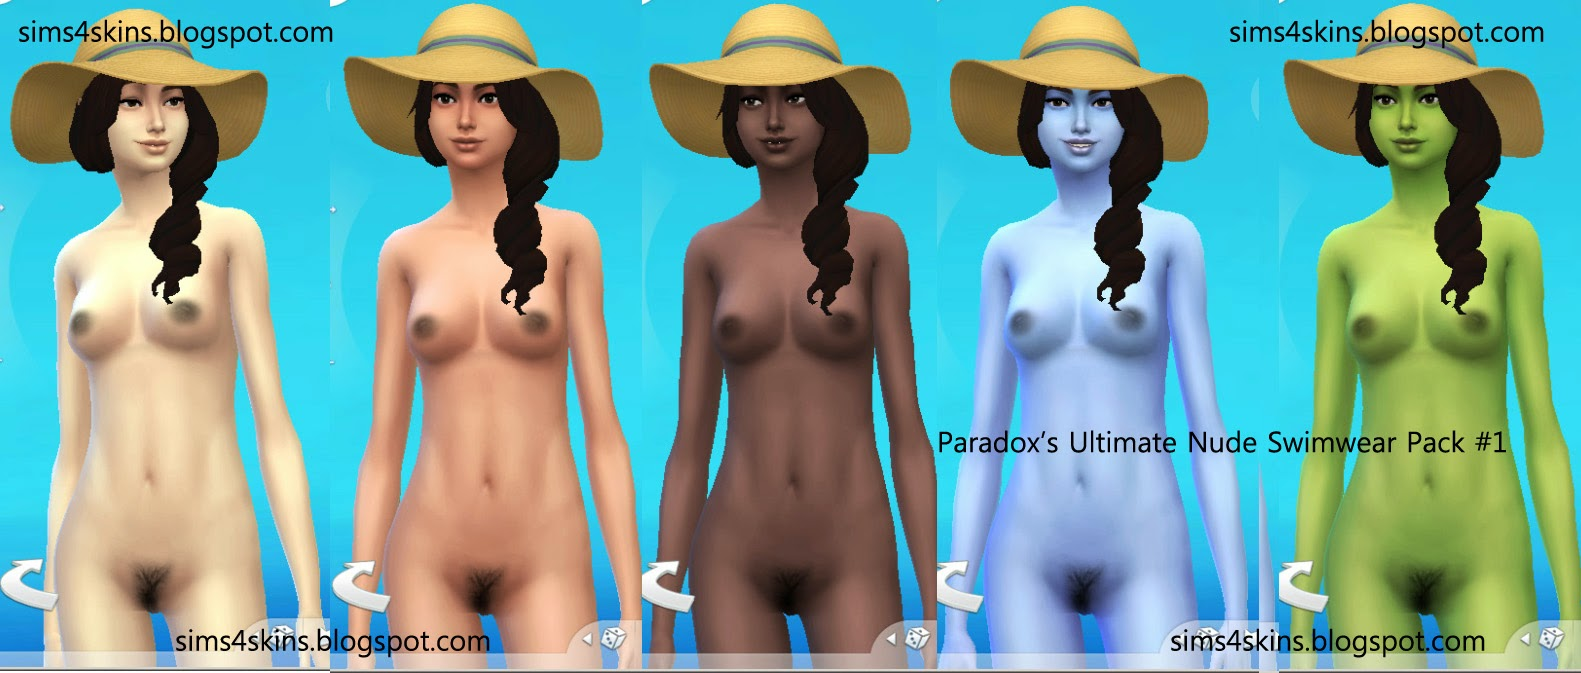 The sims super nude patch naked galleries